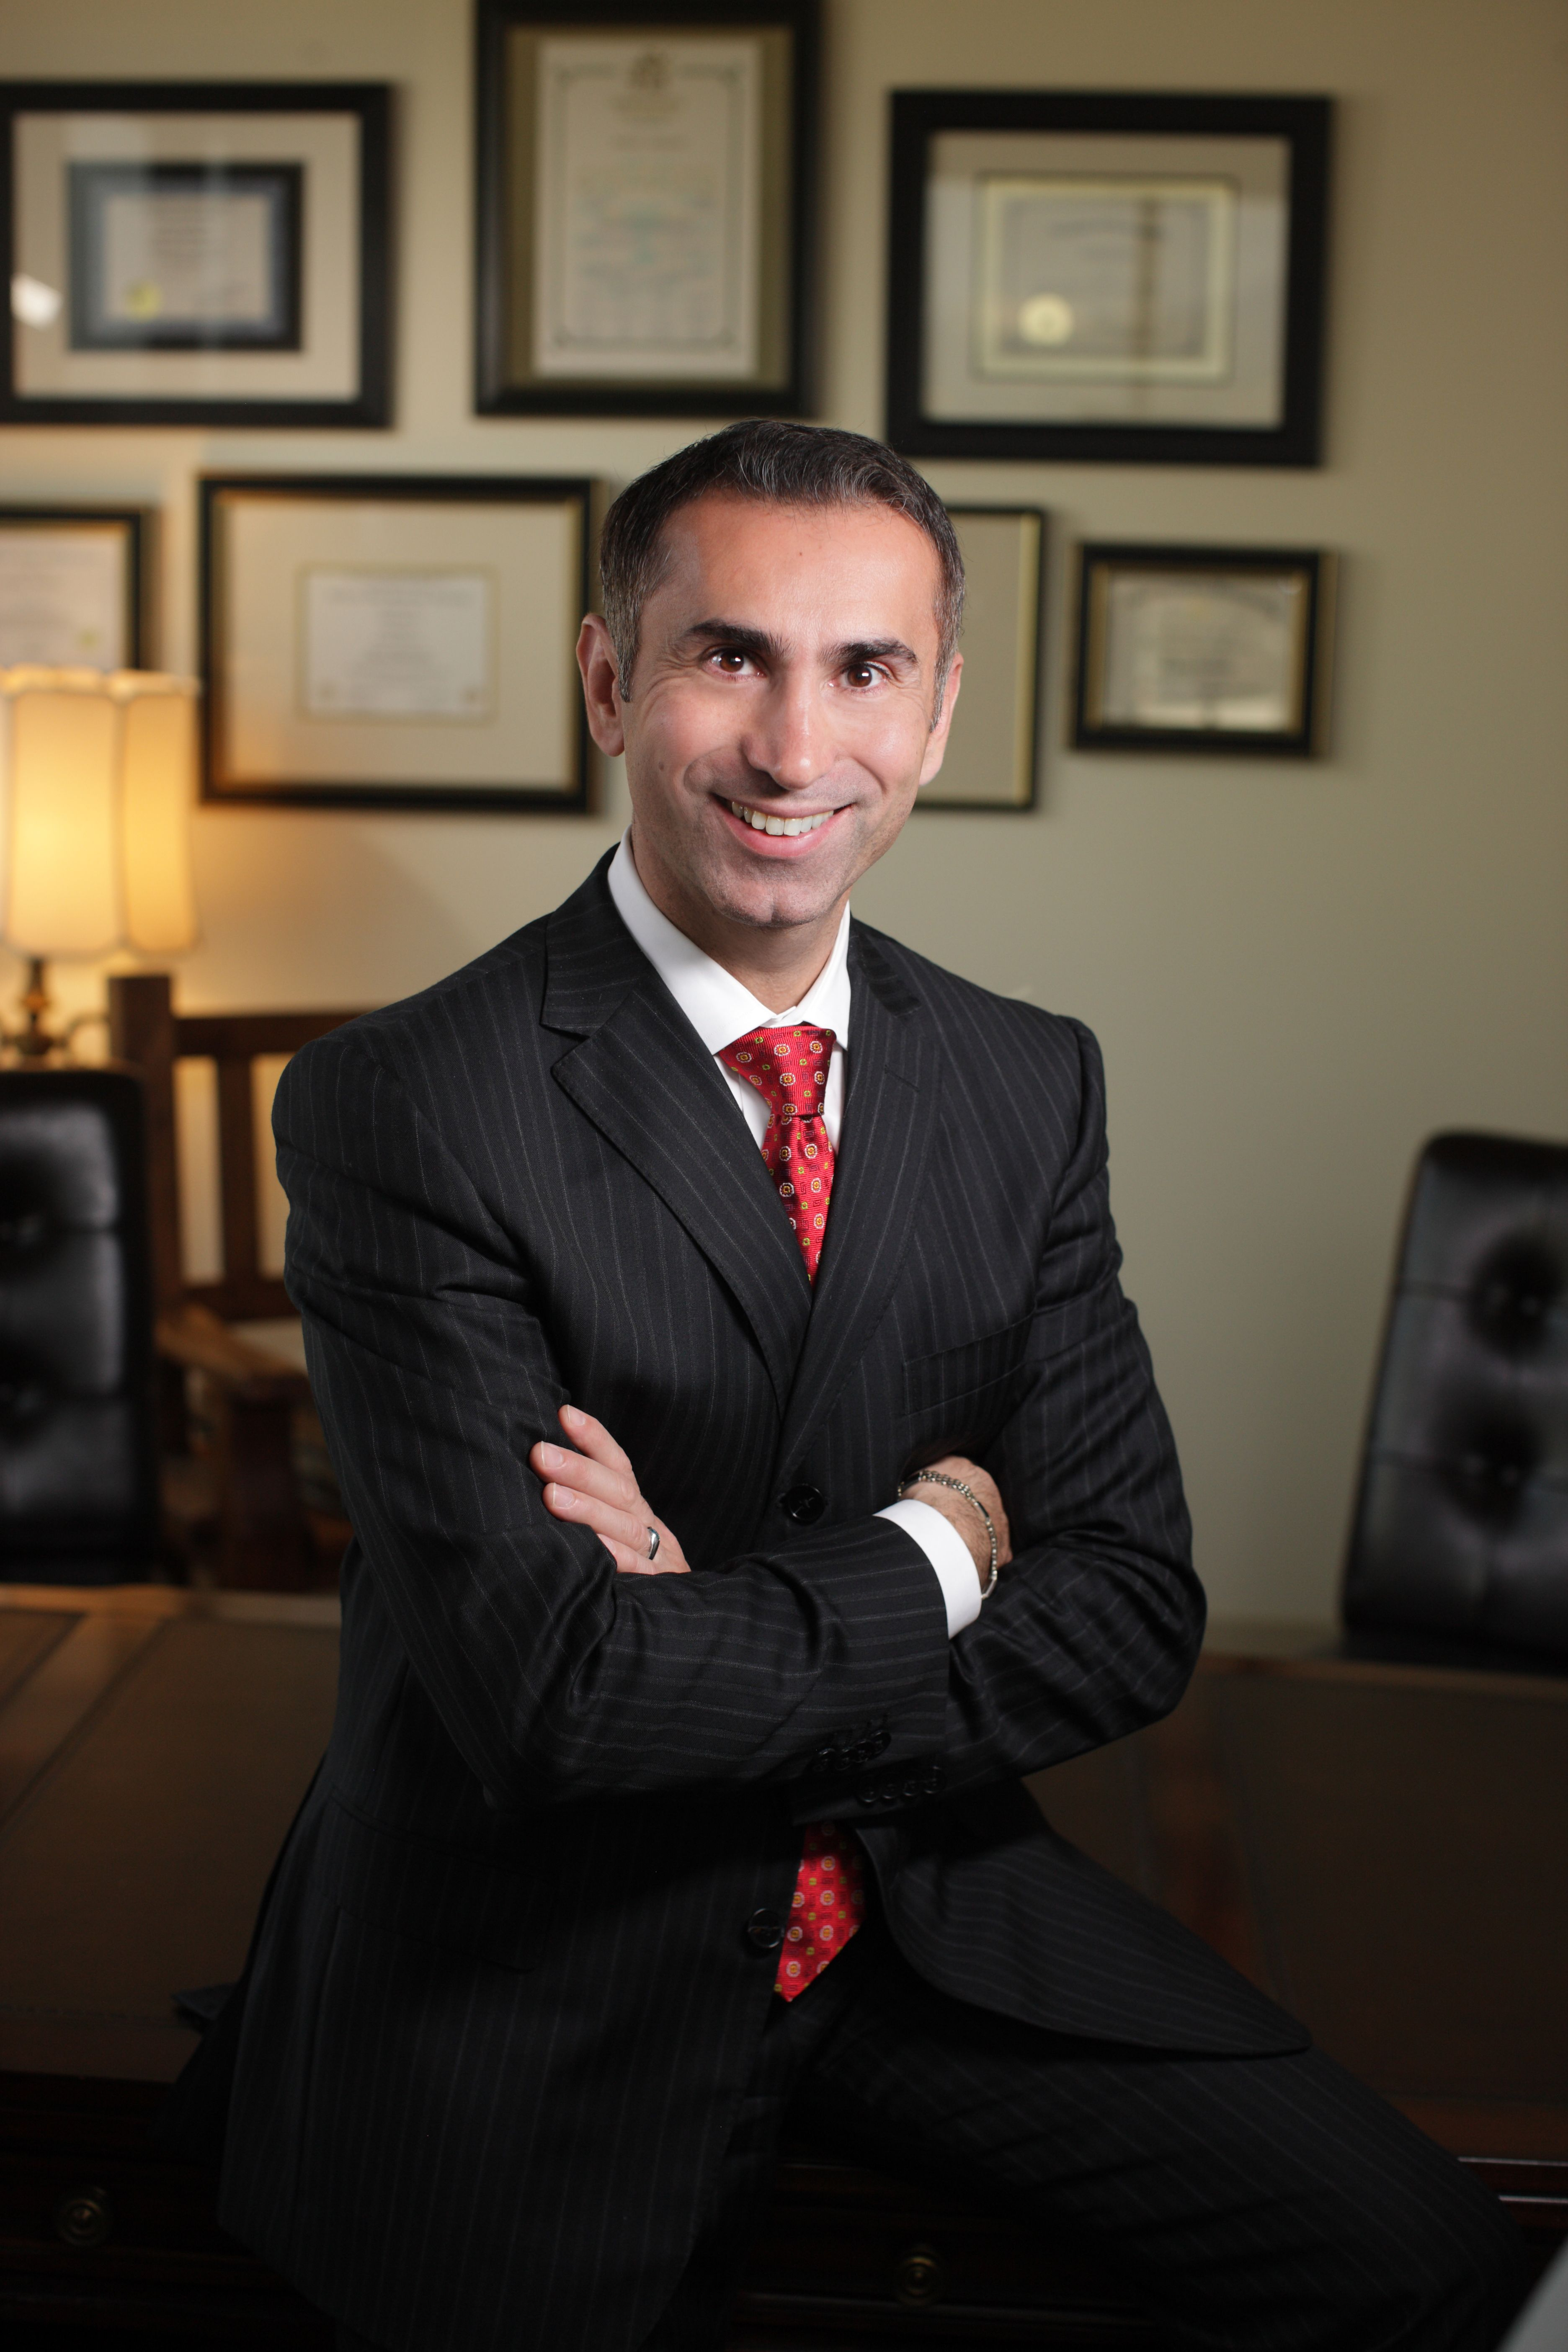 Meet Our Law Firm S Ceo Principal Partner Mr Rodney Mesriani Esq He Spent Years Specializing Specifically In Fo Attorneys Trial Attorney Personal Injury